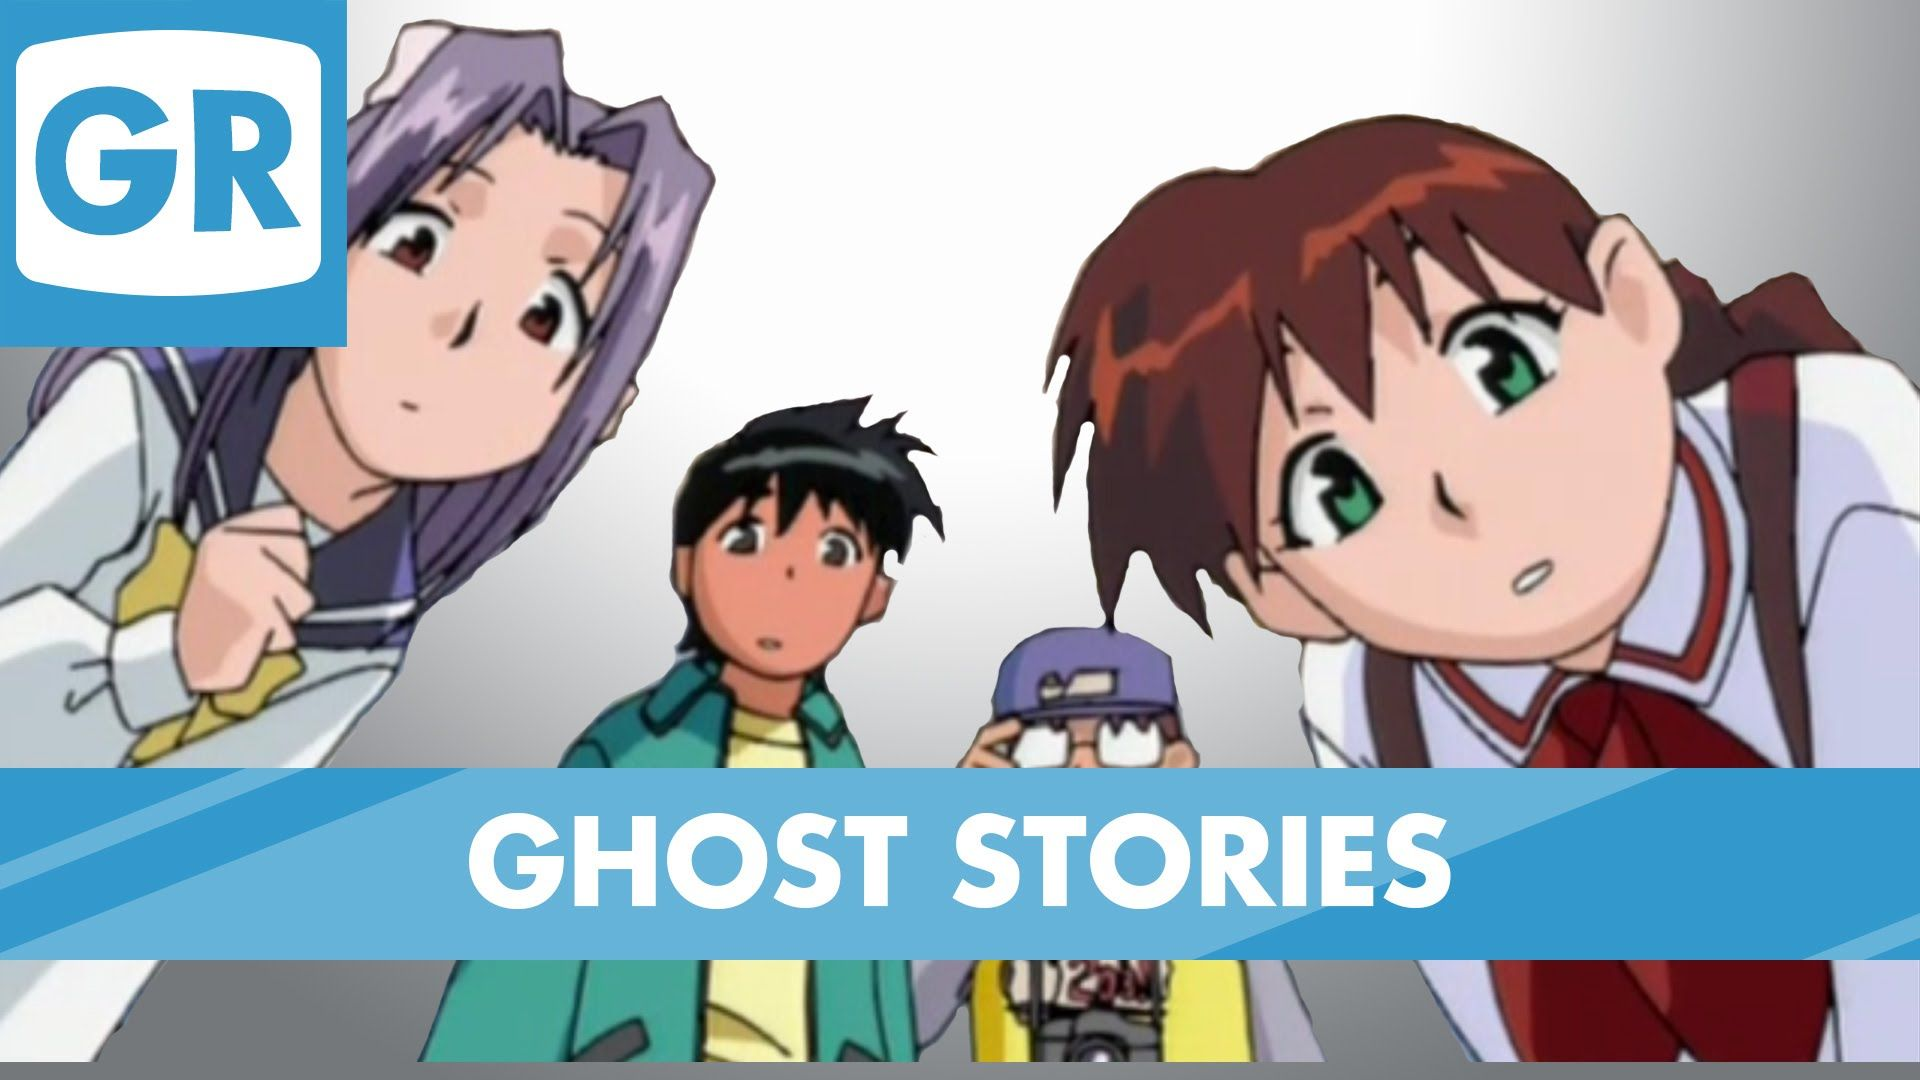 Gr anime review ghost stories ghost stories anime